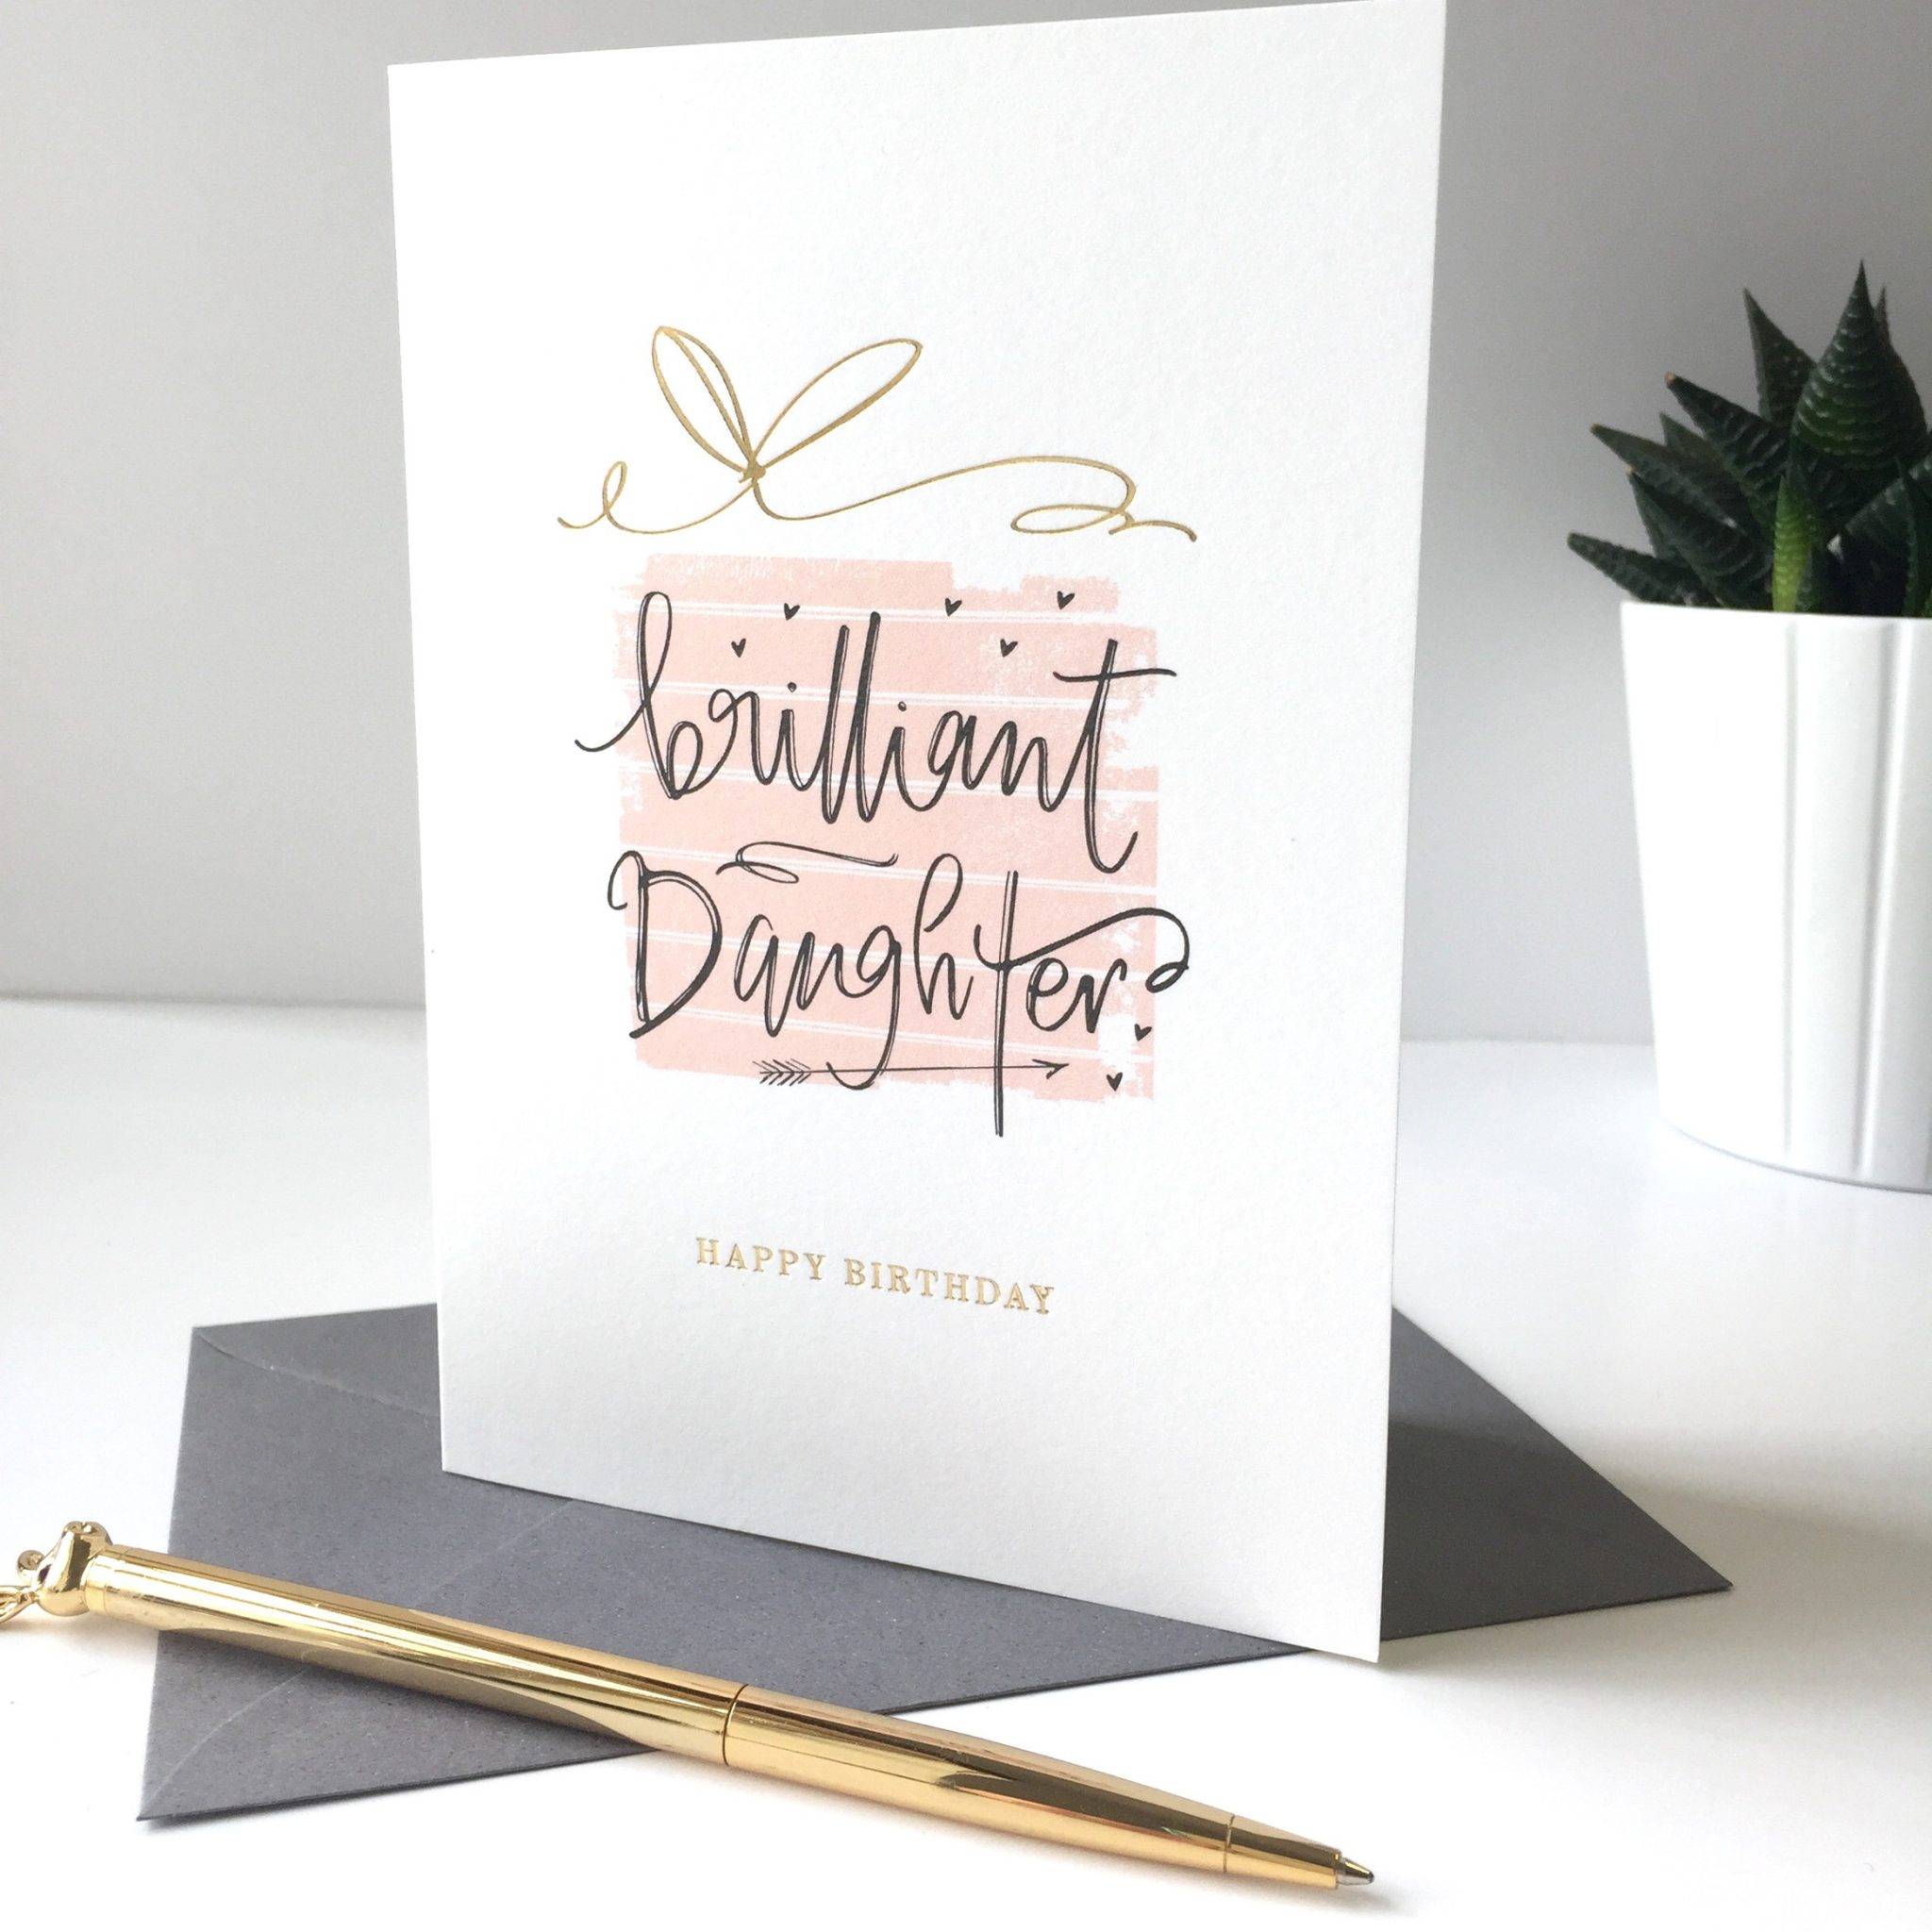 Happy Birthday Brilliant Daughter Greeting Card